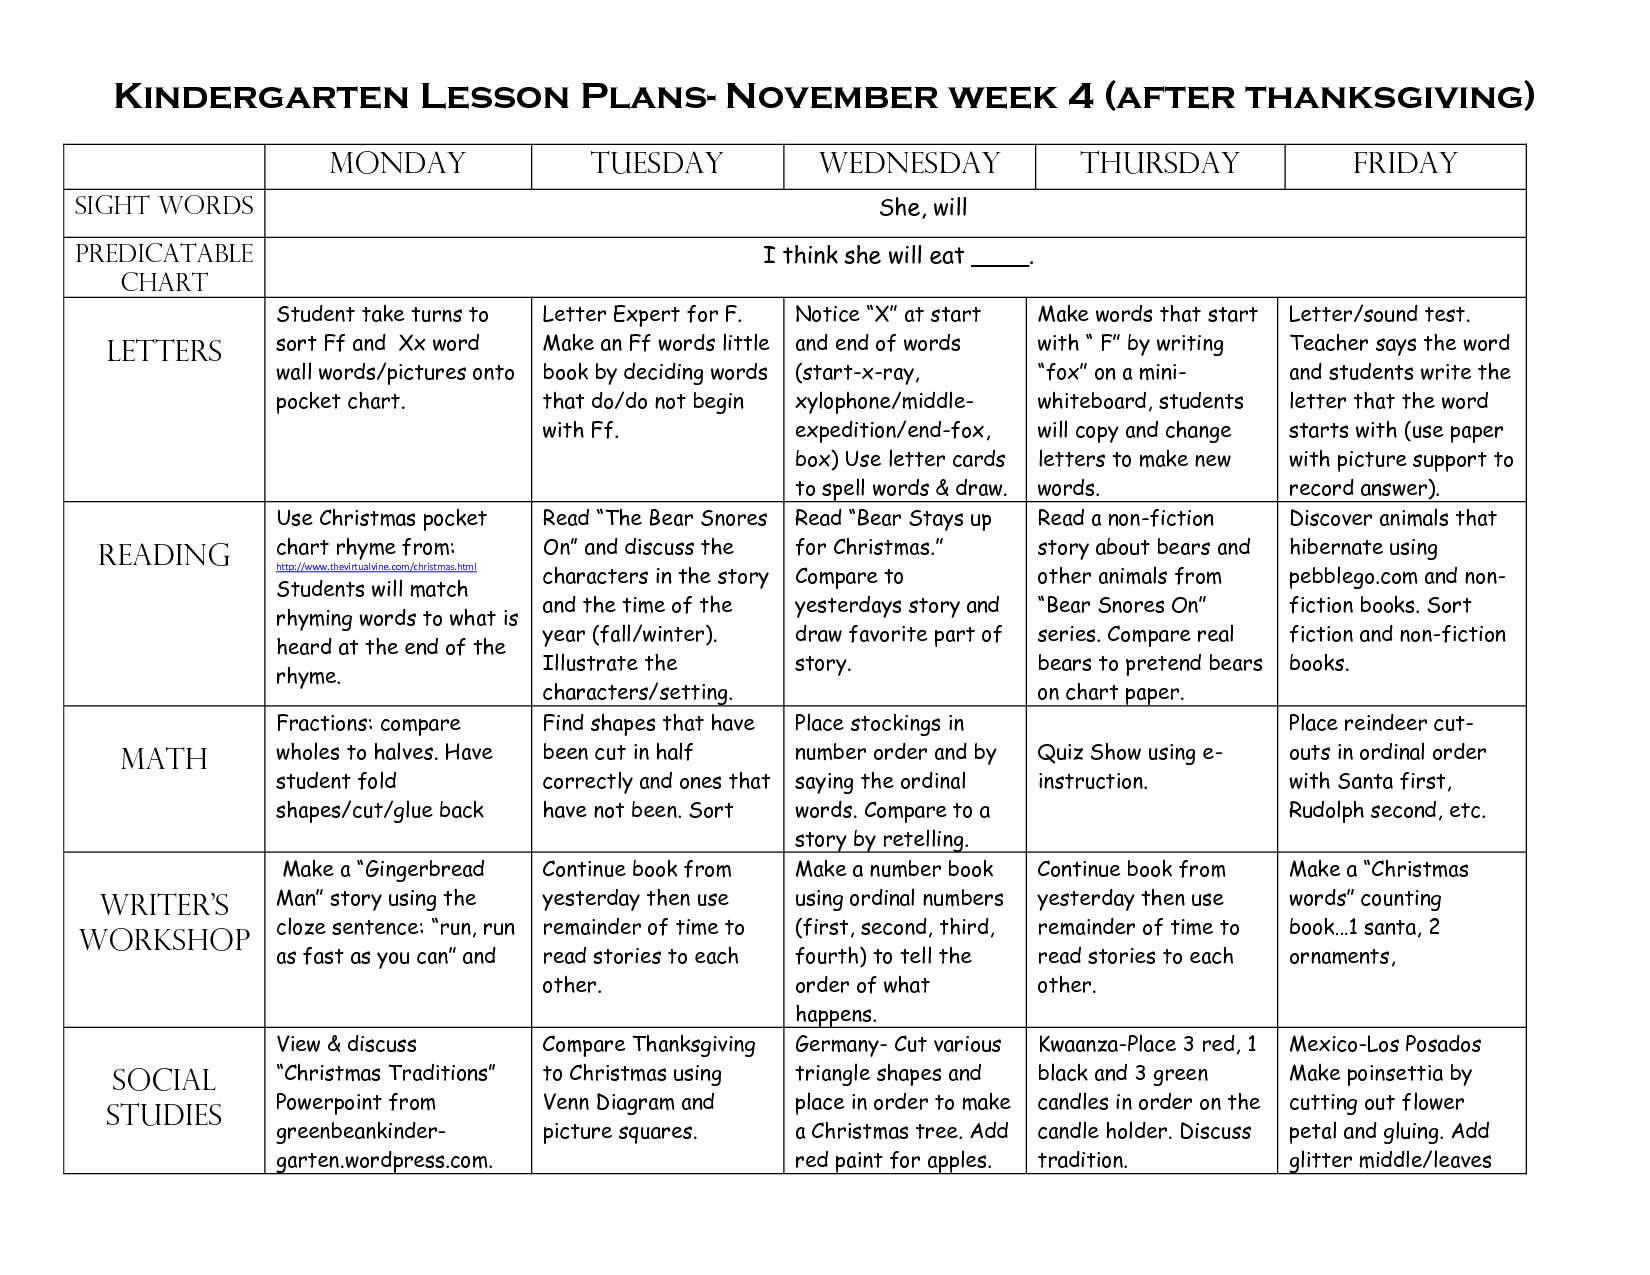 Writing lesson plans for preschoolers kindergarten lesson plans writing lesson plans for preschoolers kindergarten lesson plans novemberr 4th week after thanksgiving saigontimesfo